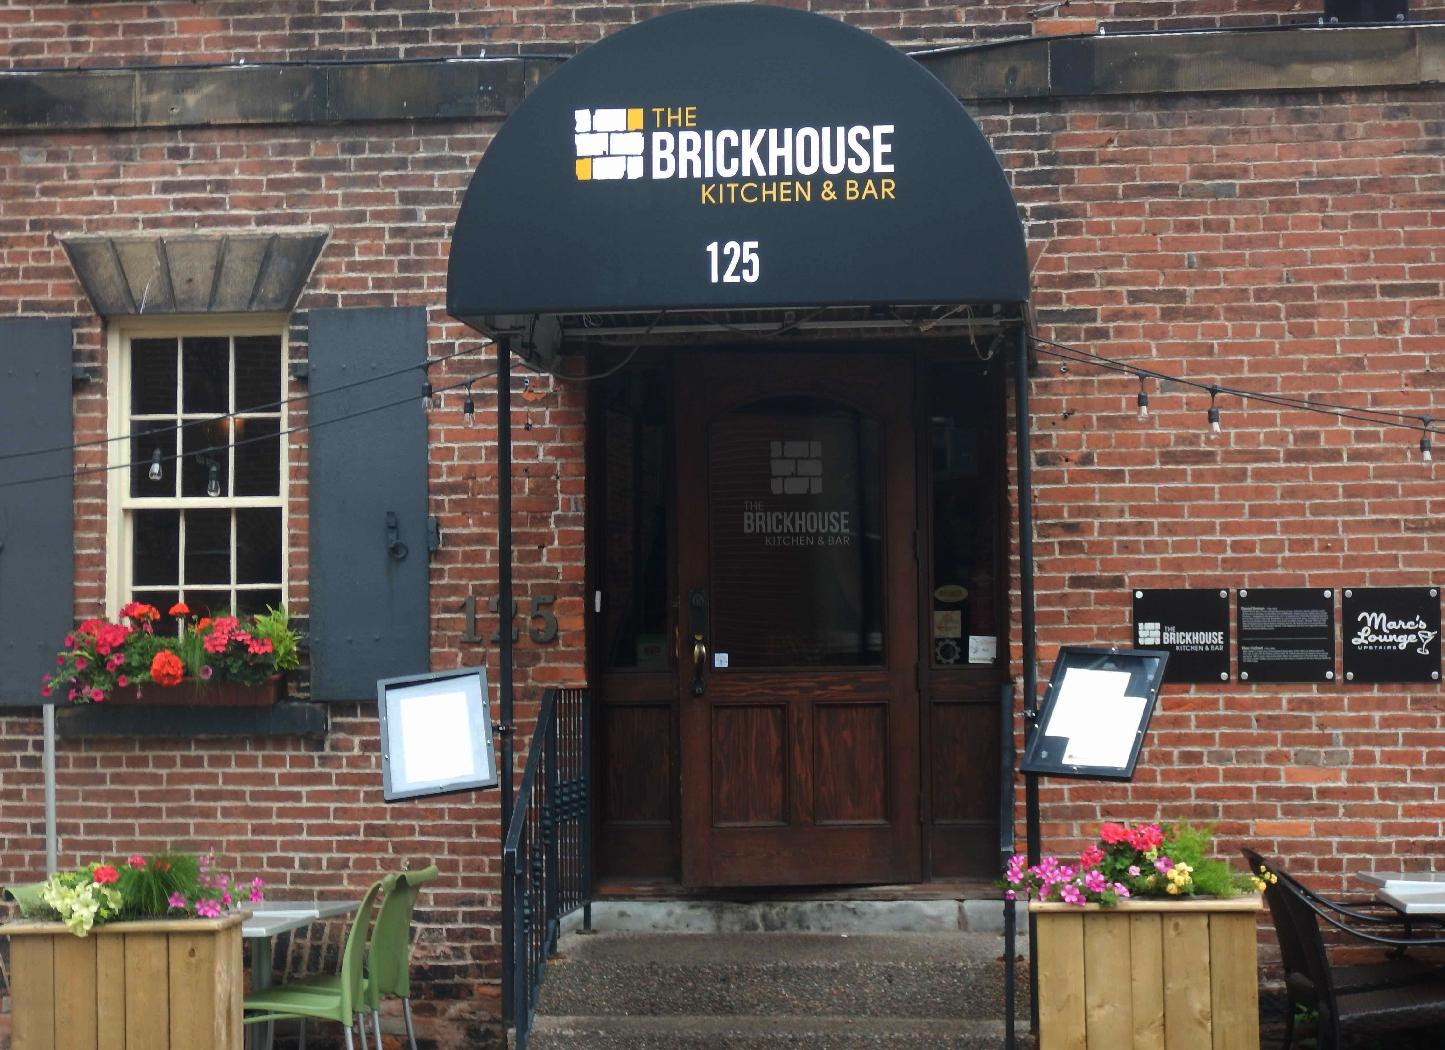 The Brickhouse 1A